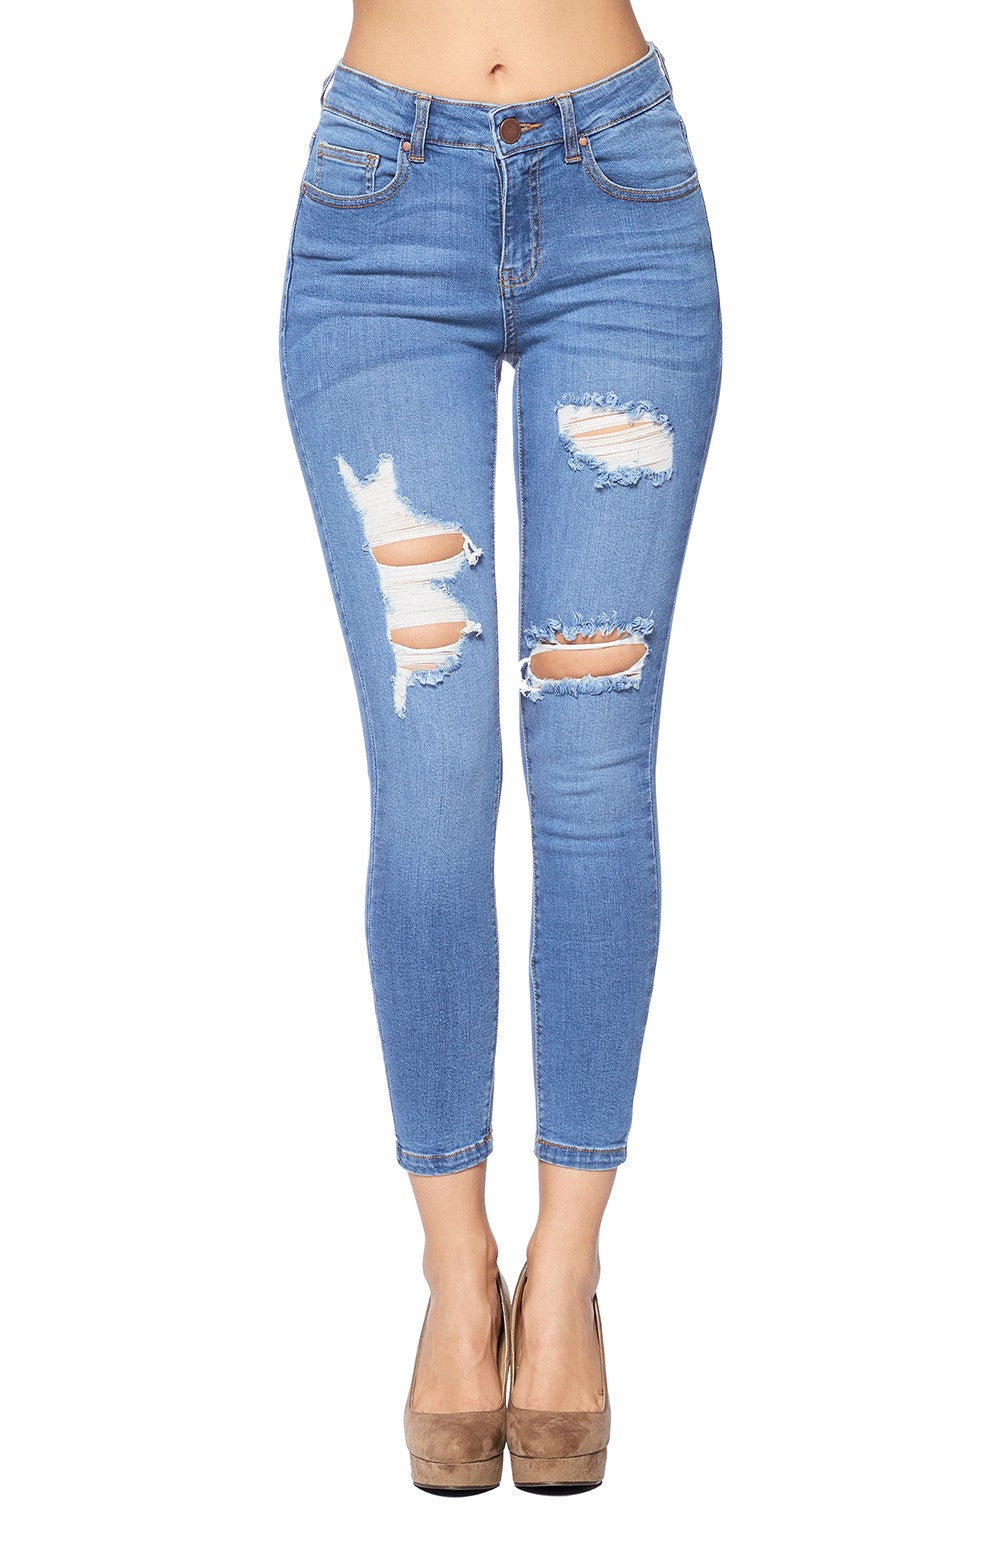 Another Dimension Jeans (Light Blue)